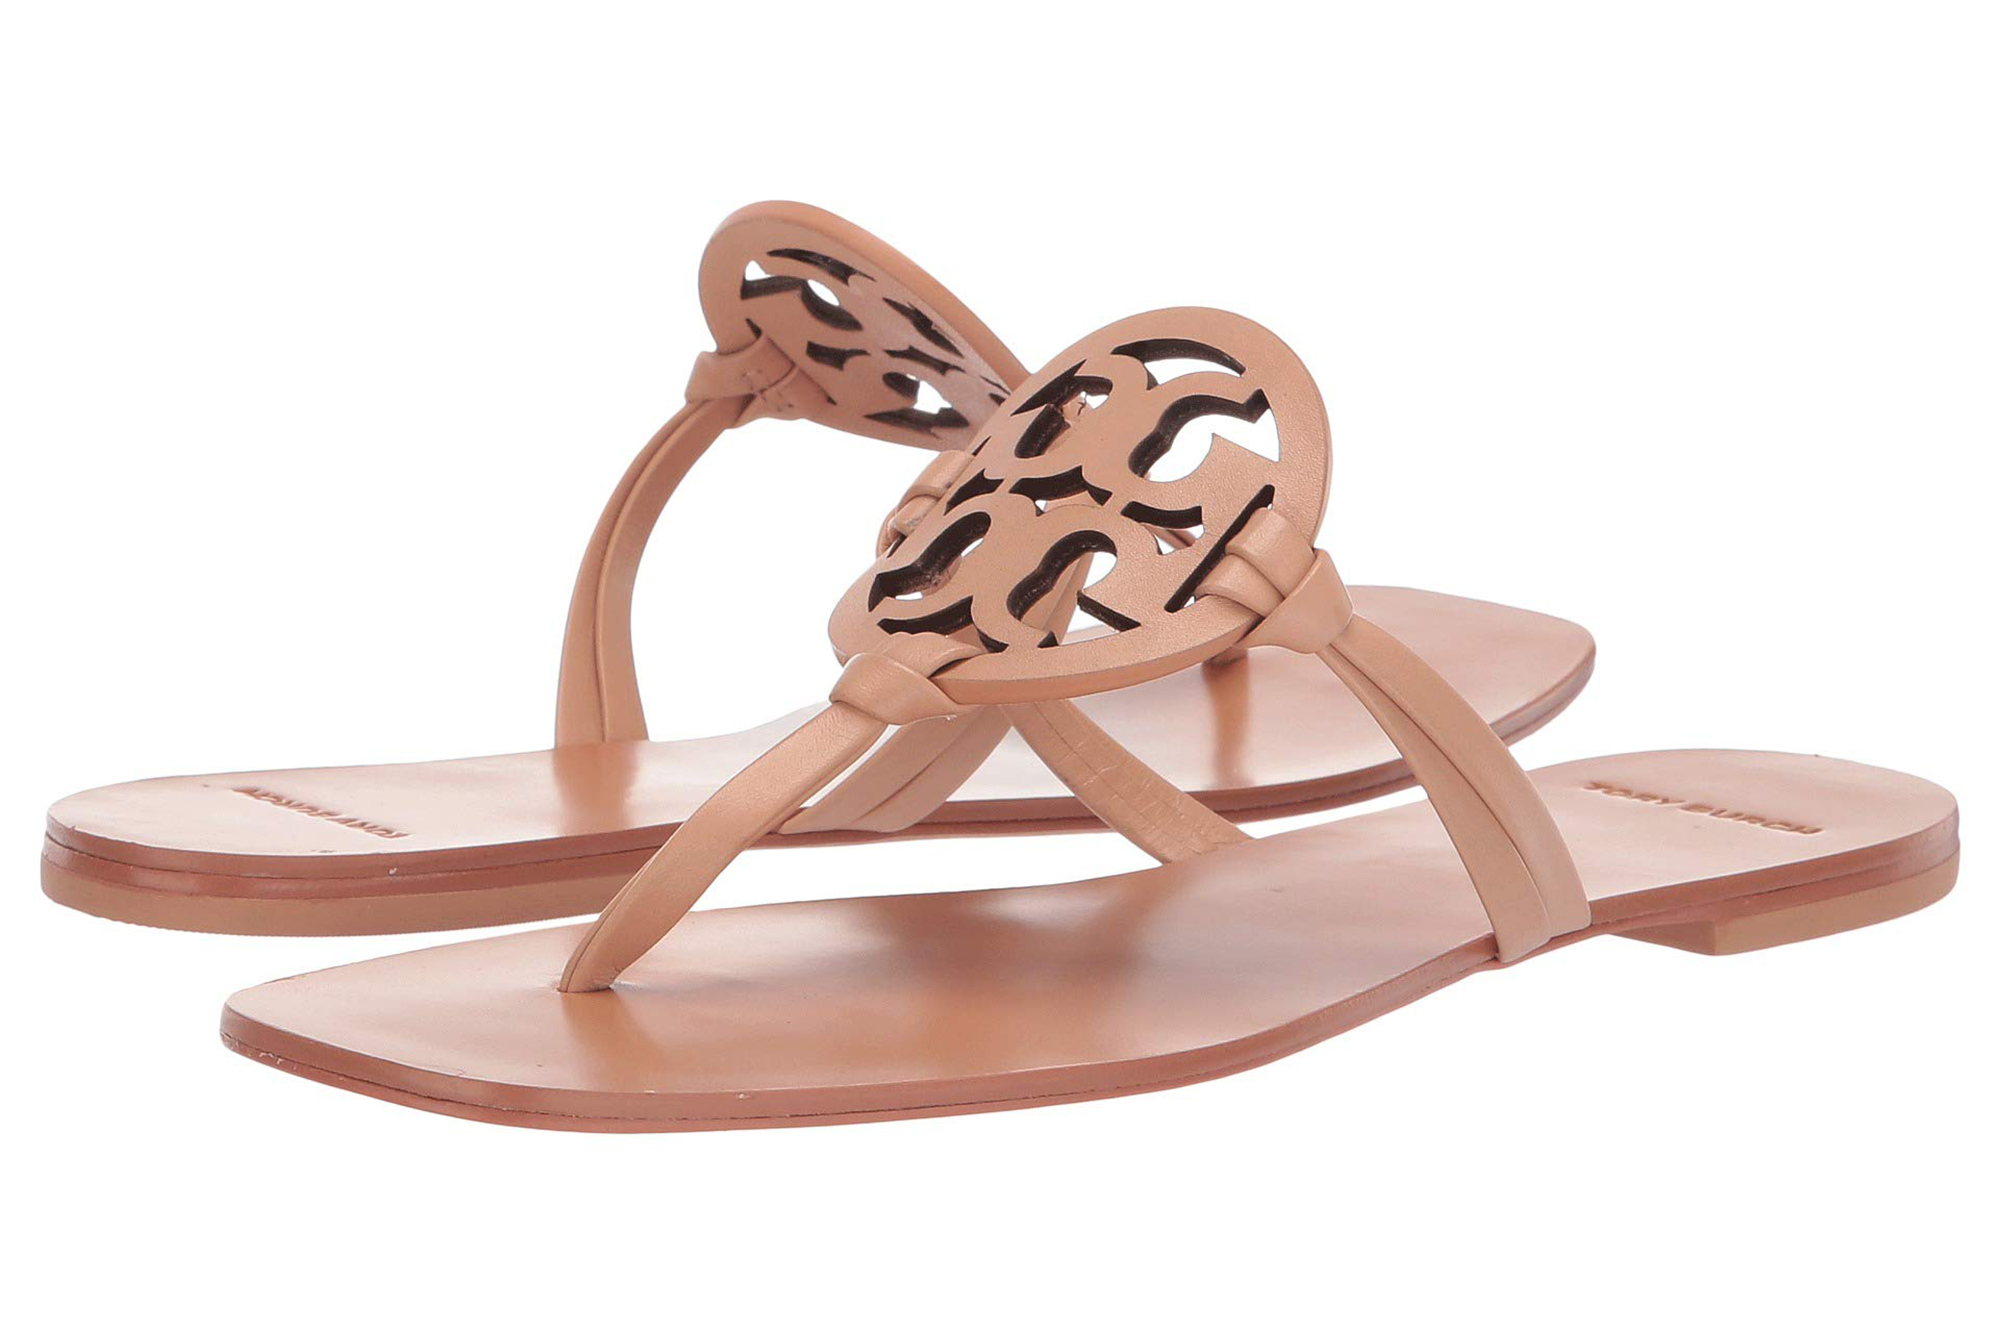 068d626de Make Sandals a Statement With These On-Sale Tory Burch Shoes